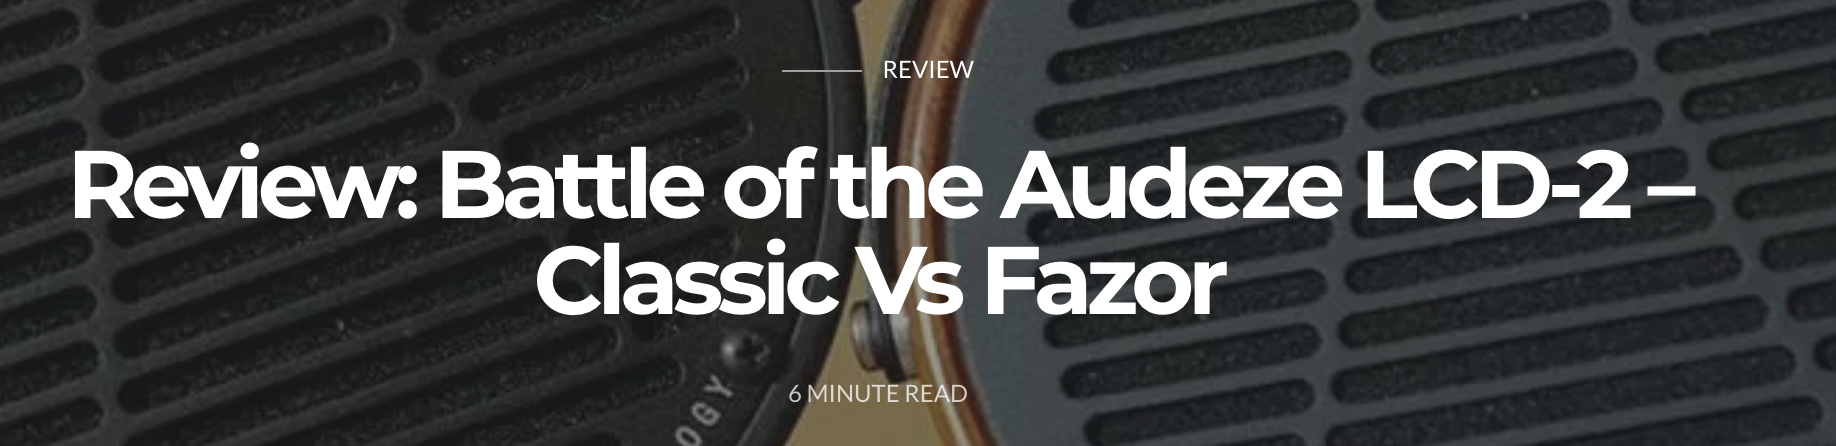 Audeze LCD-2 Classic vs. LCD-2 - A Comparative Review from Jean Mouchet at Headphonesty